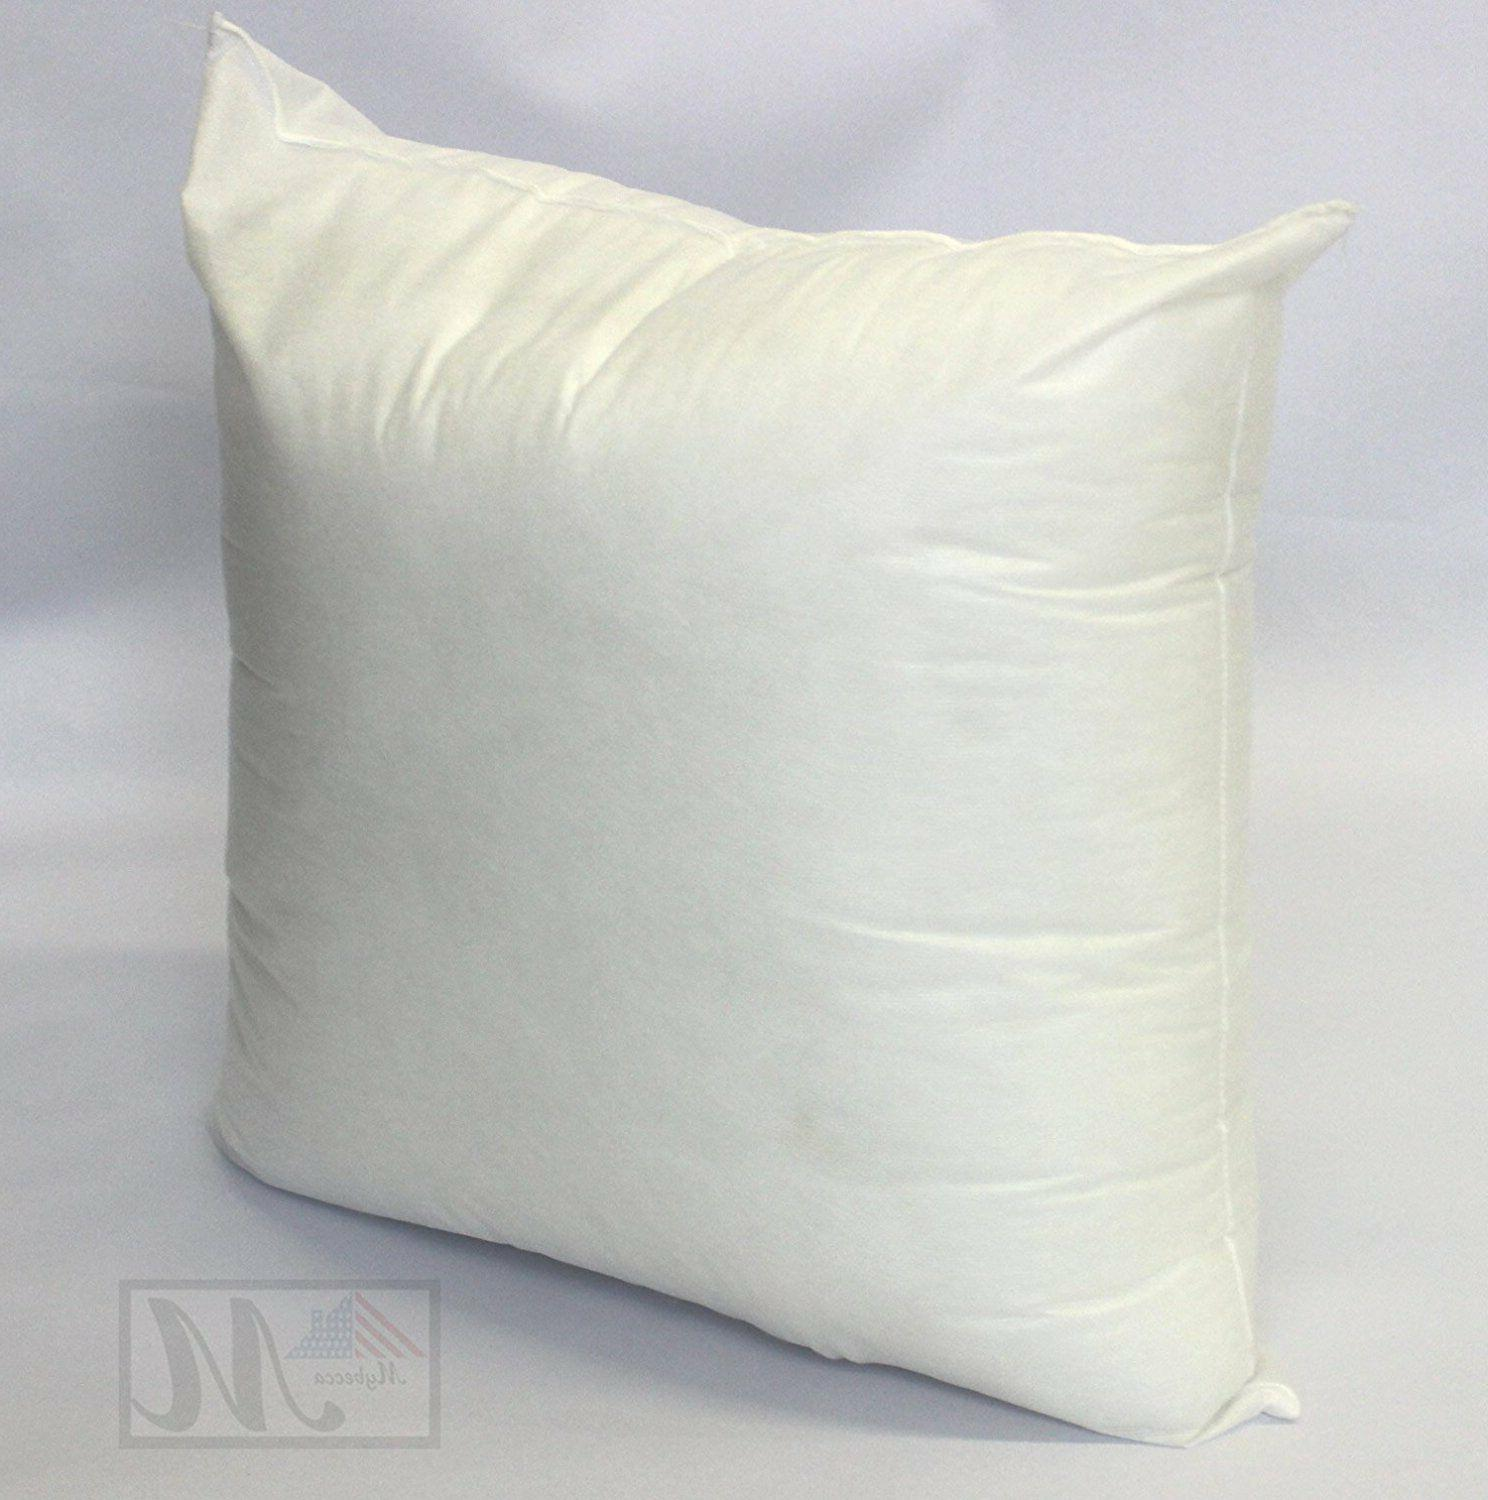 mybecca square euro pillow form insert all sizes made in usa pillow forms insert bedding uniforce home garden